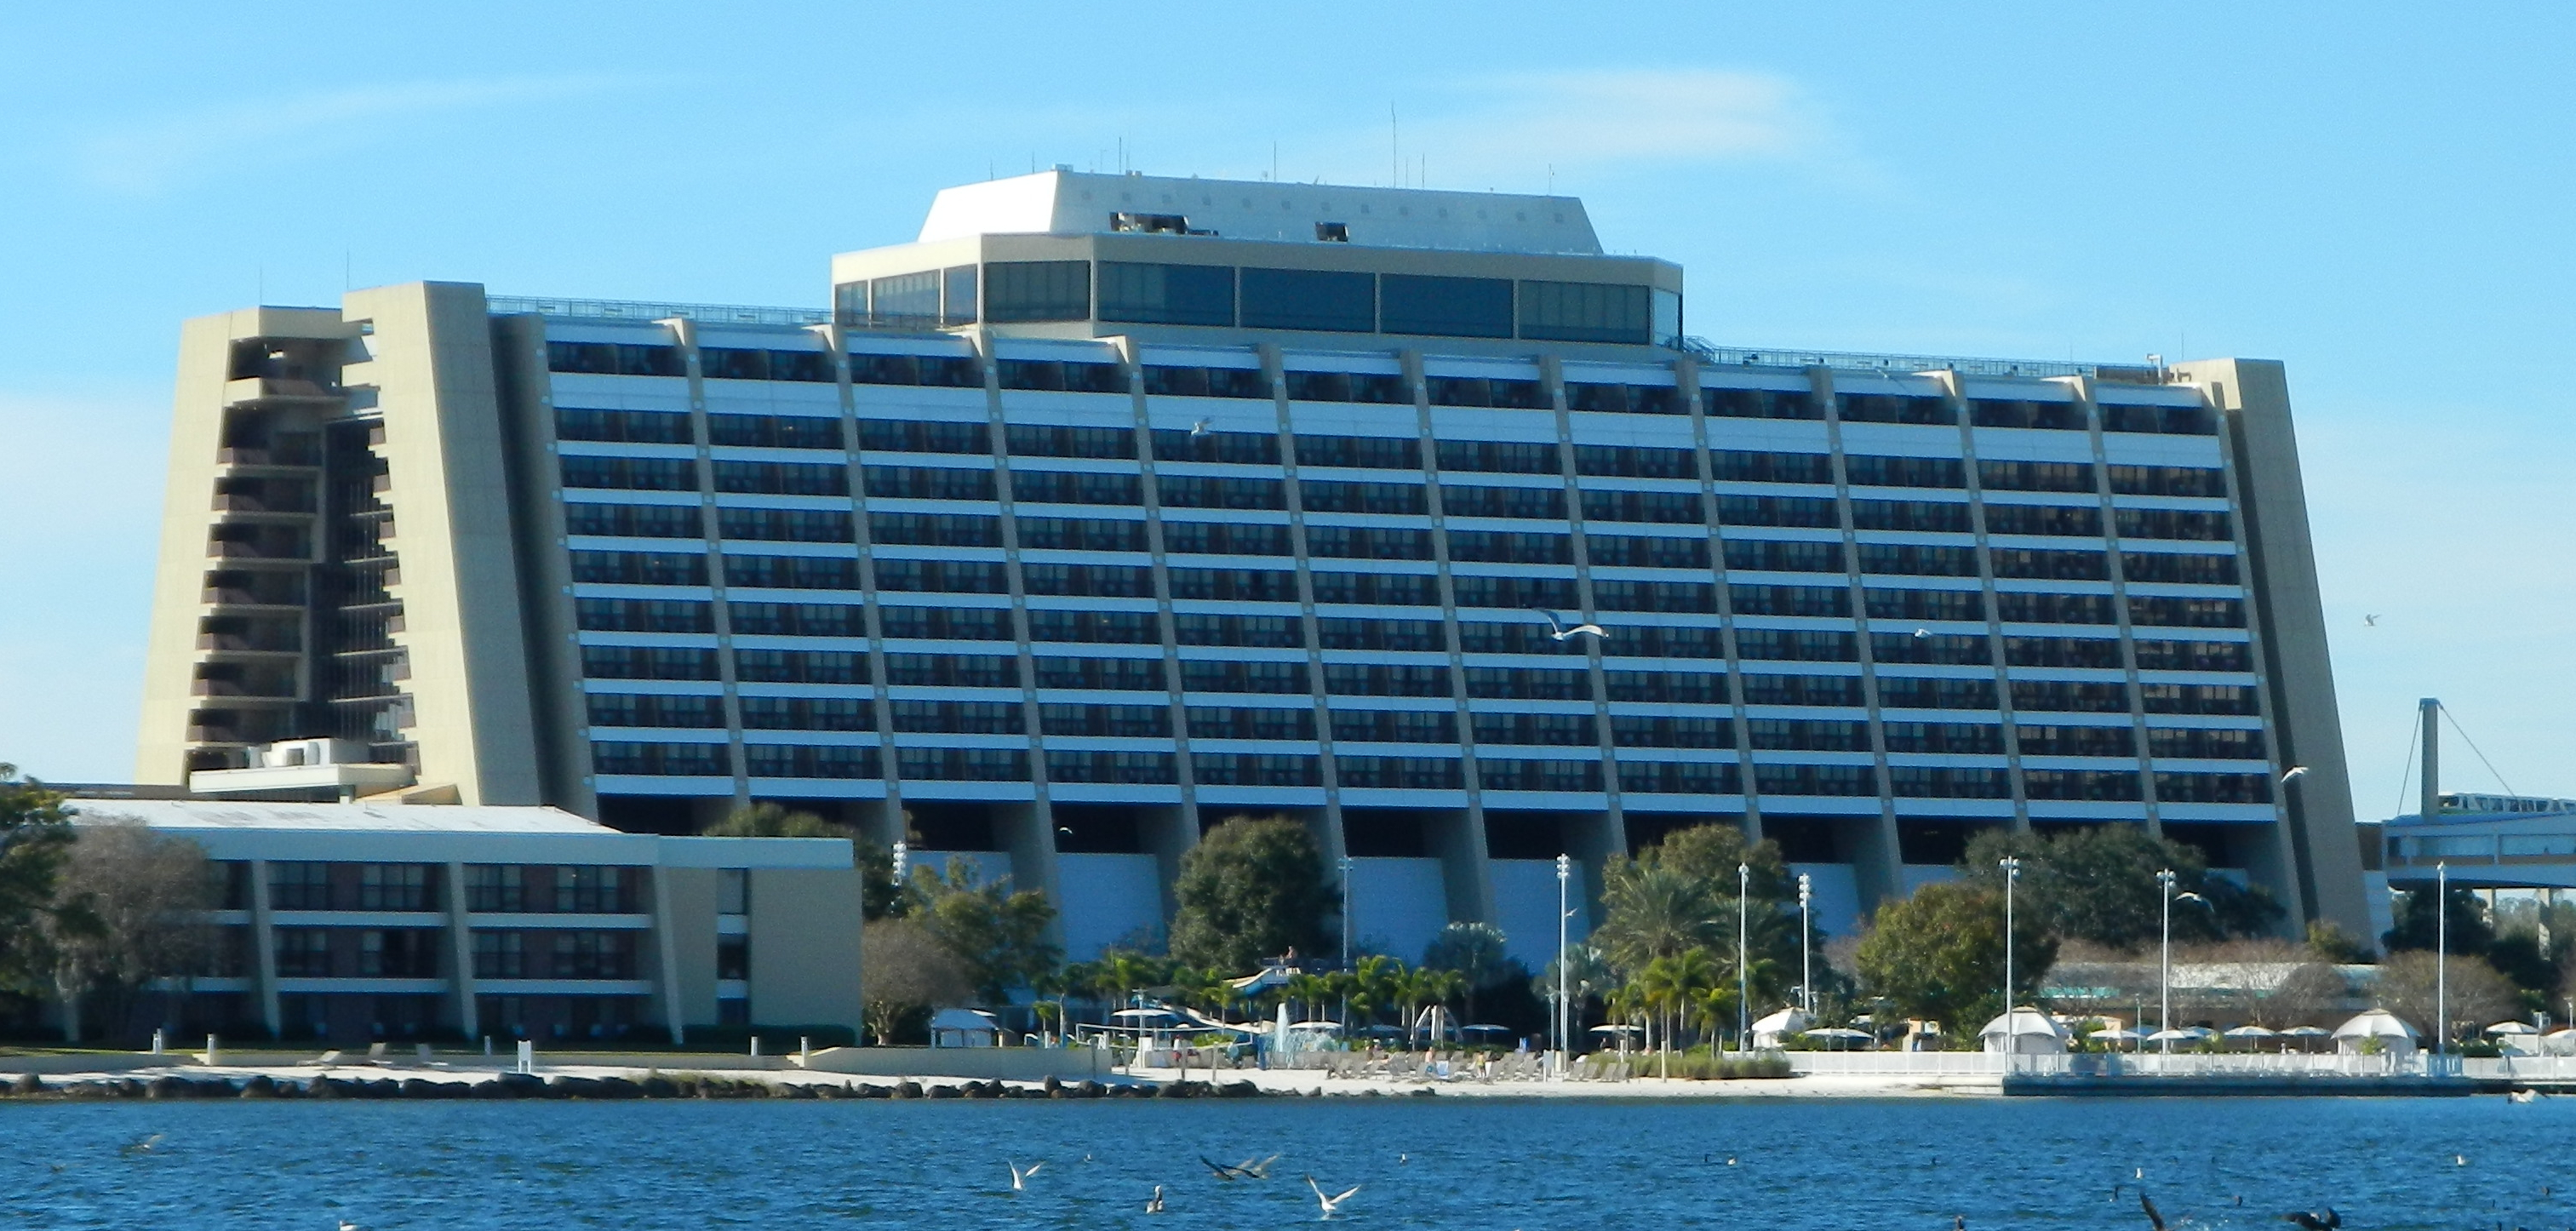 This was our view of the Contemporary Resort from our boat ride to the Magic Kingdom.